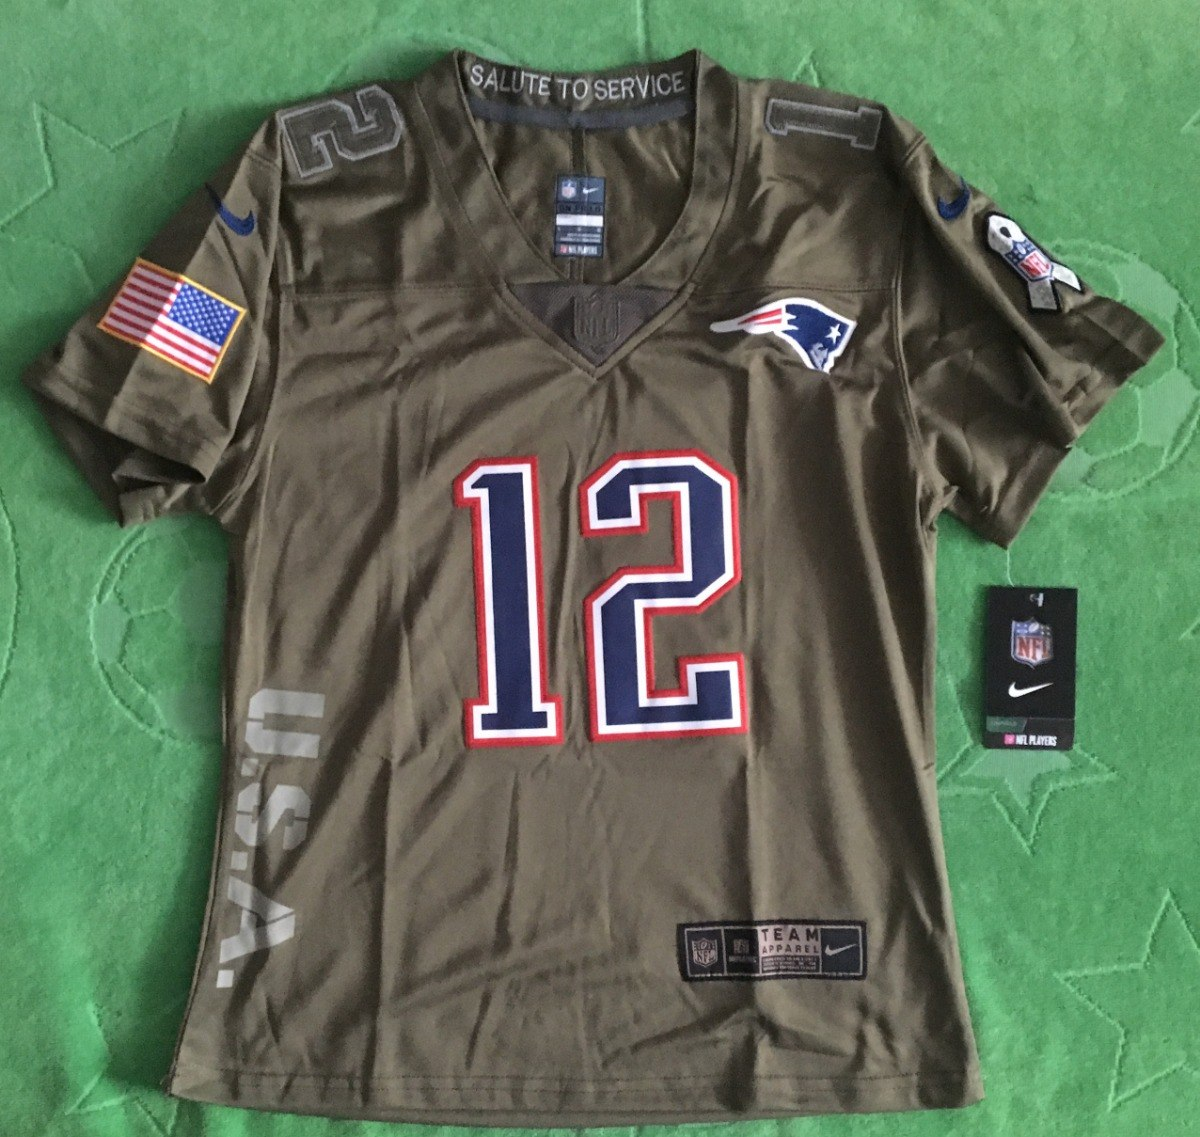 fad9631491d47 jersey new england patriots mujer salute service tom brady. Cargando zoom.